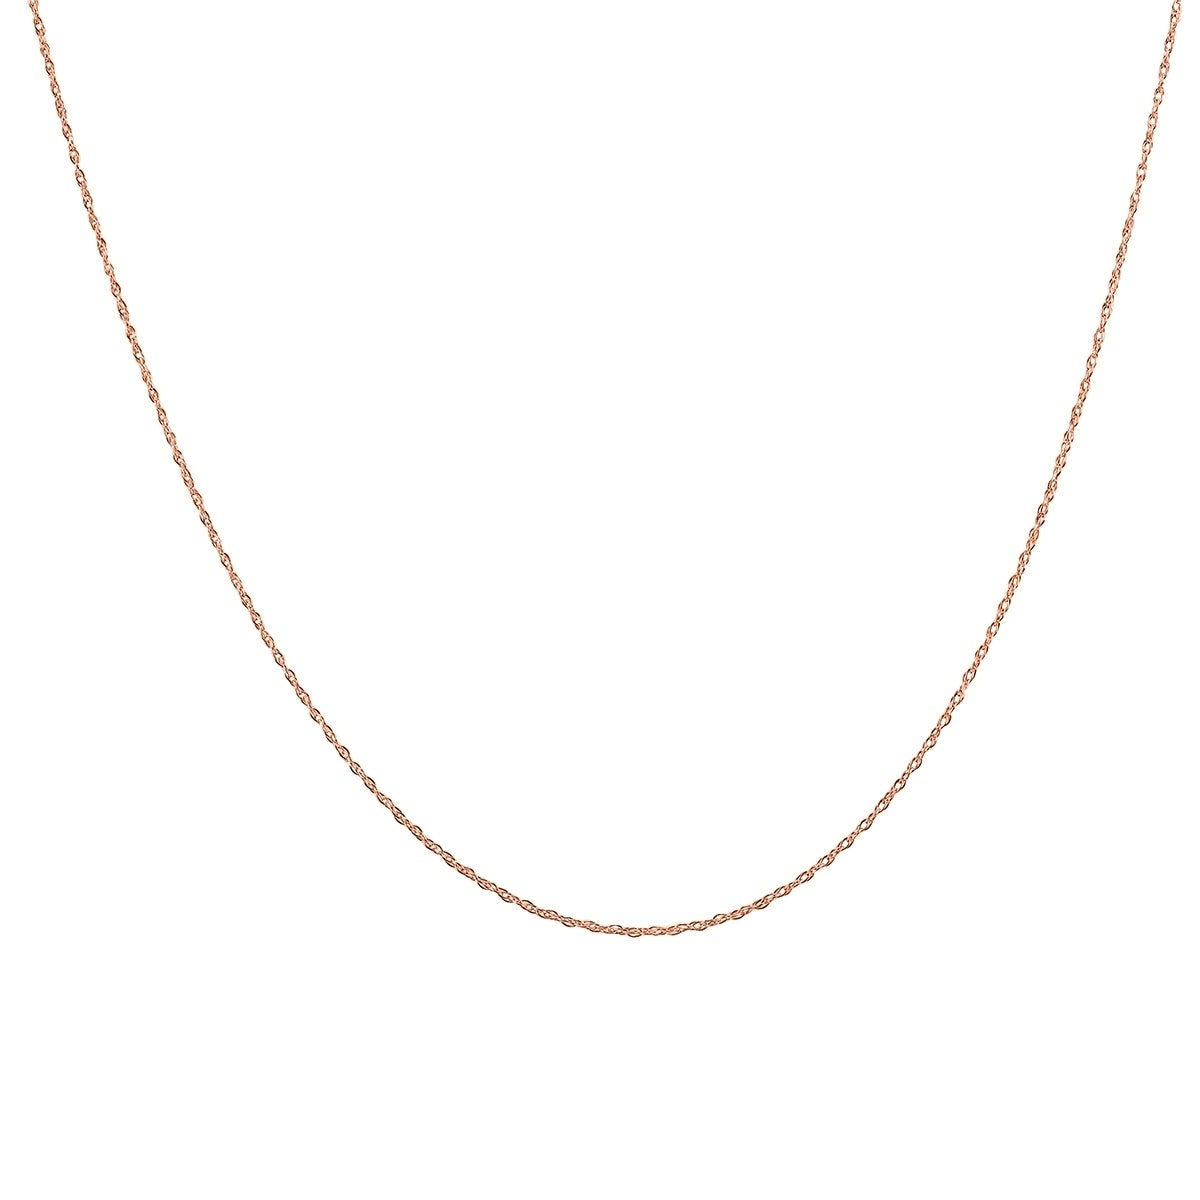 27 Inch 14K Gold Filled Cable Chain Necklace W// Spring Clasp and Closed Rings